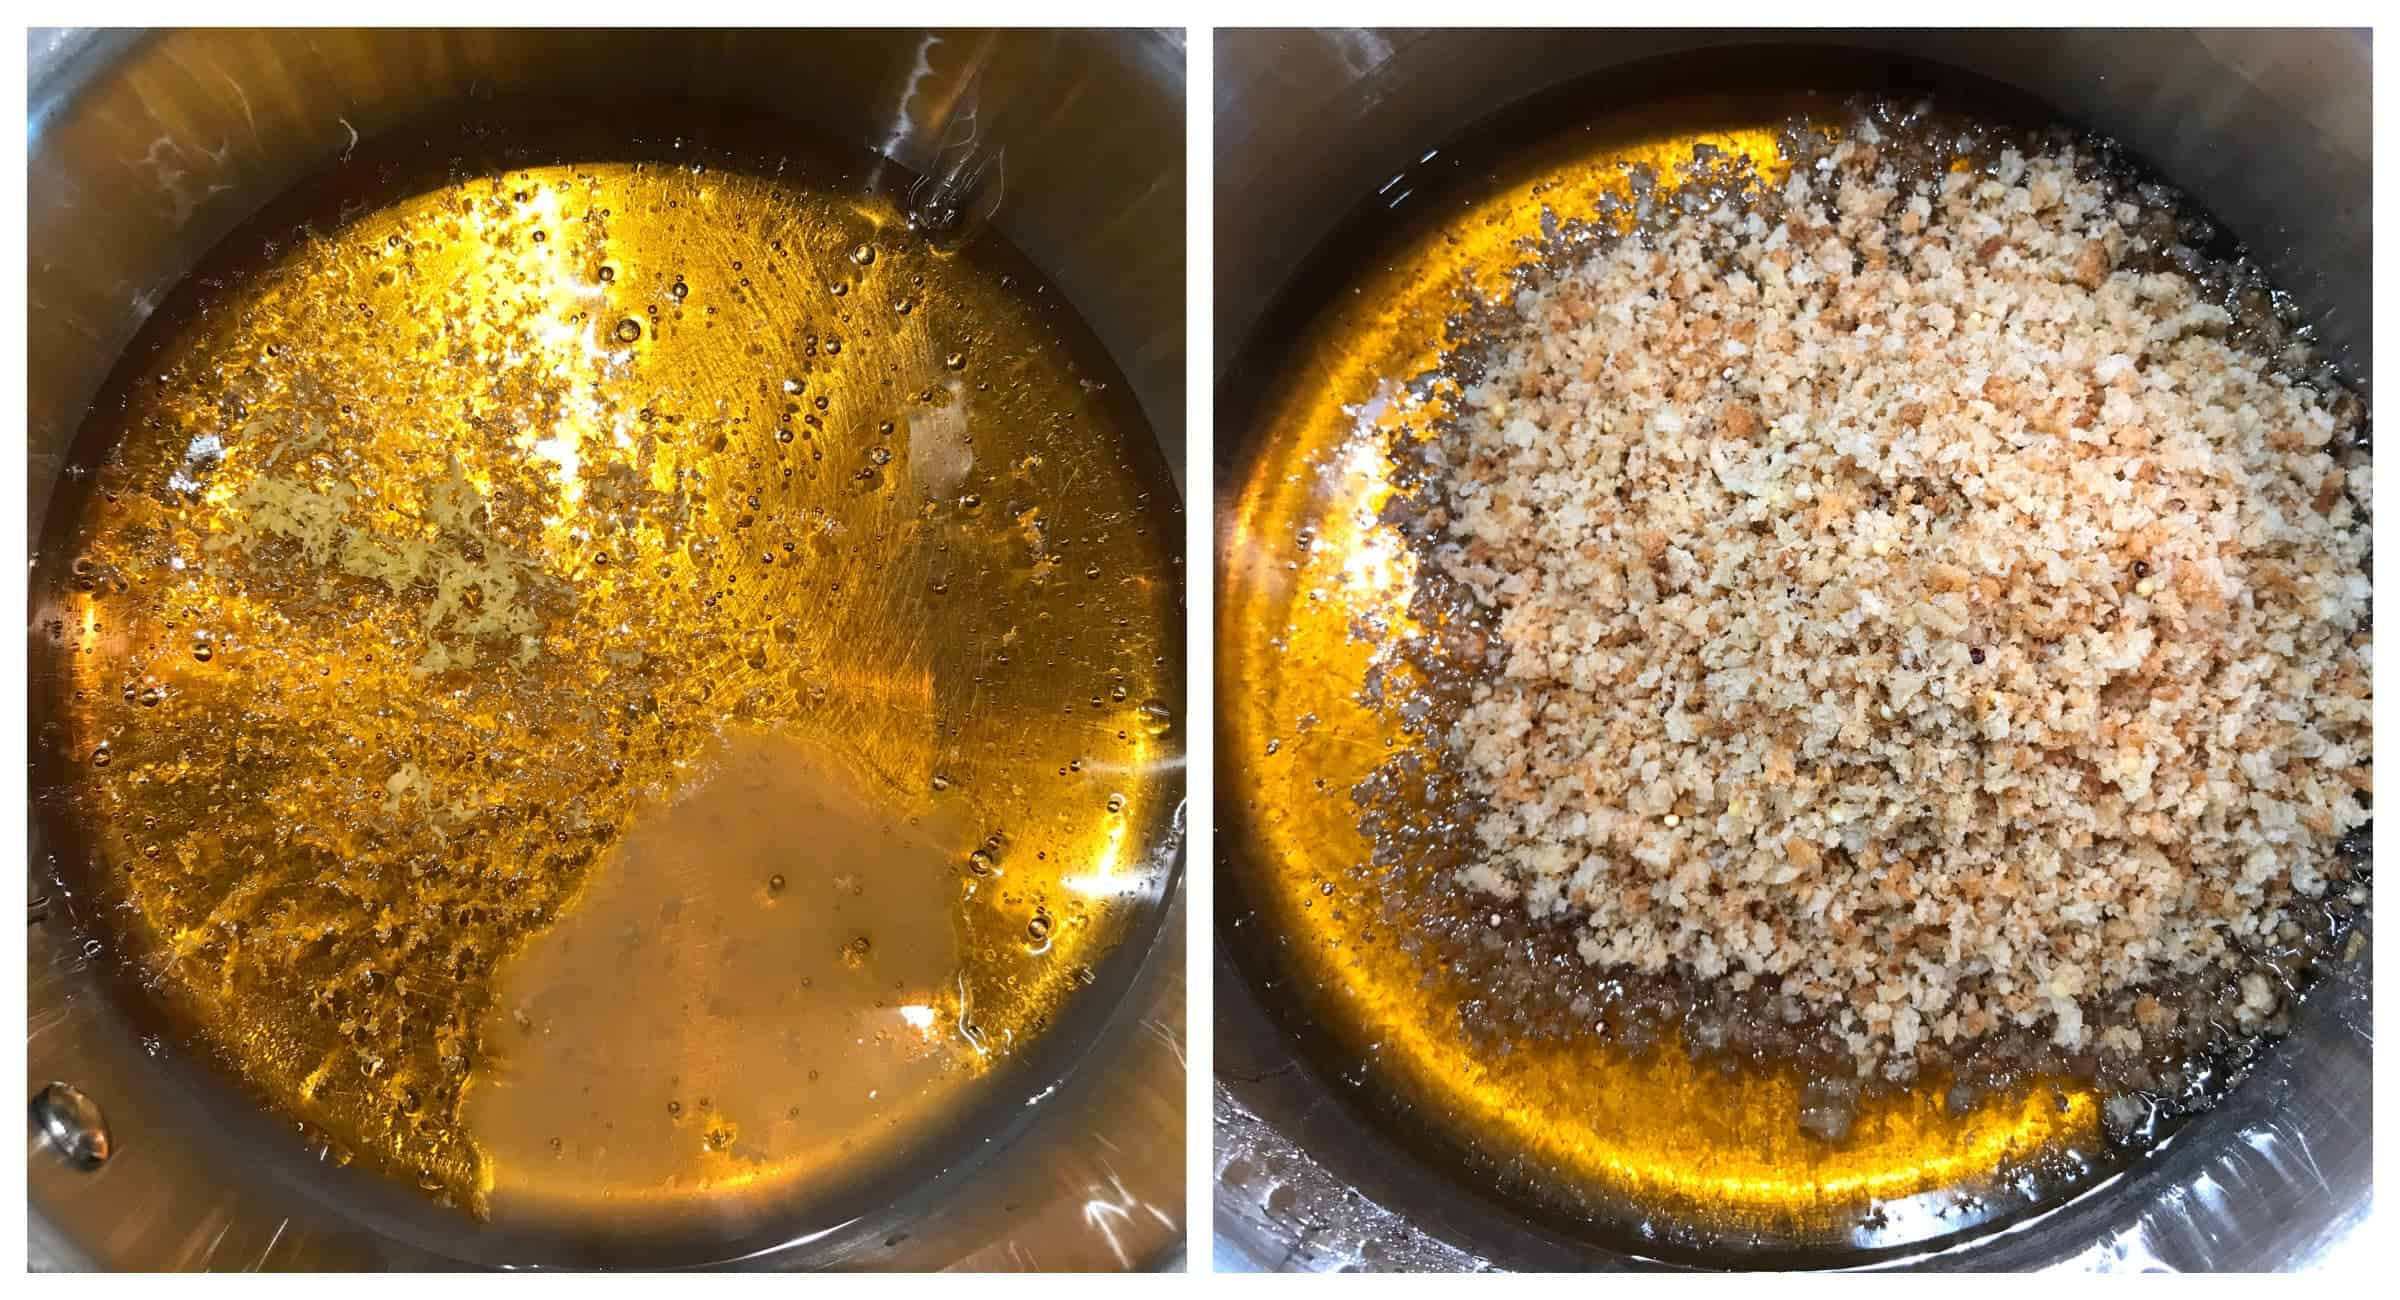 golden syrup and breadcrumbs in saucepan